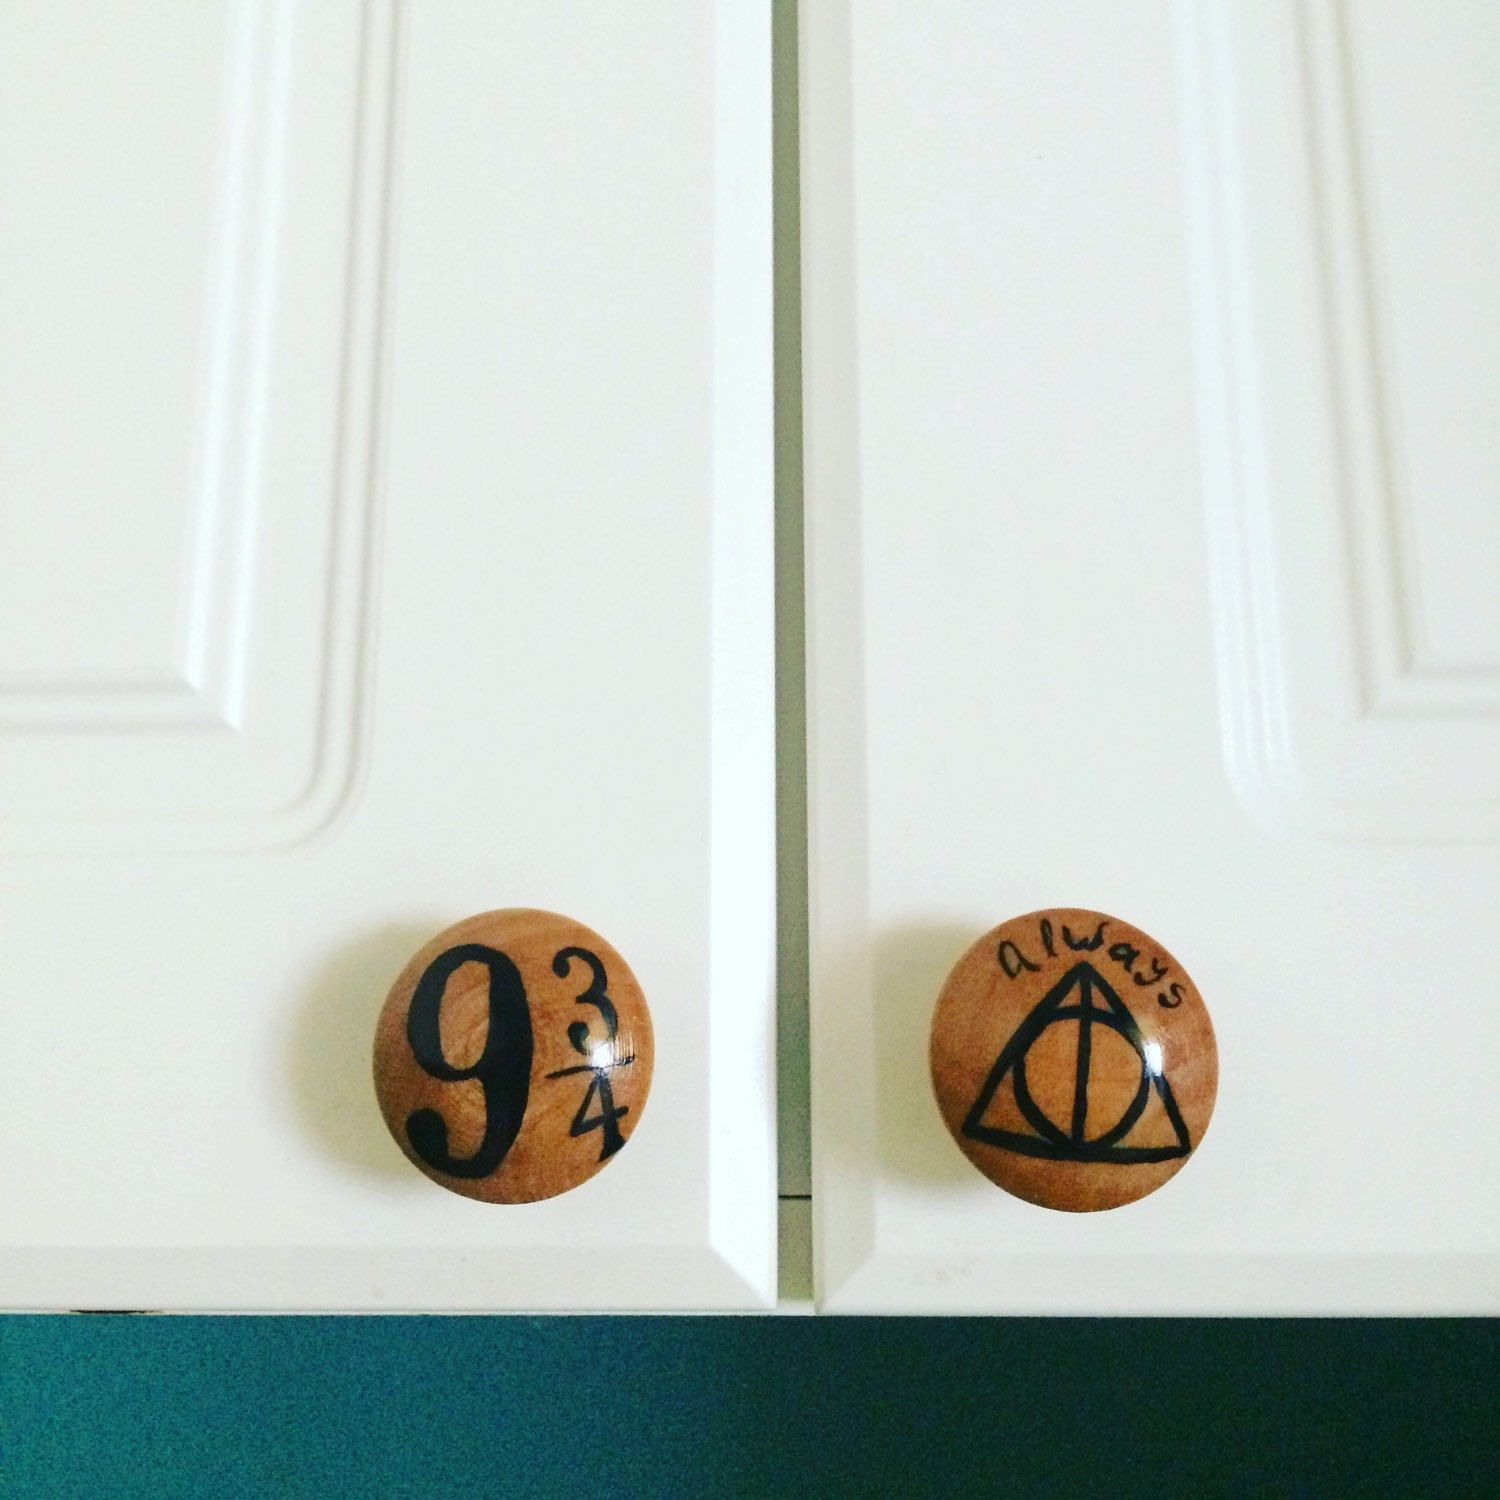 Lovely Find These Harry Potter Knobs And More On My Etsy Site And Add Some Magic To